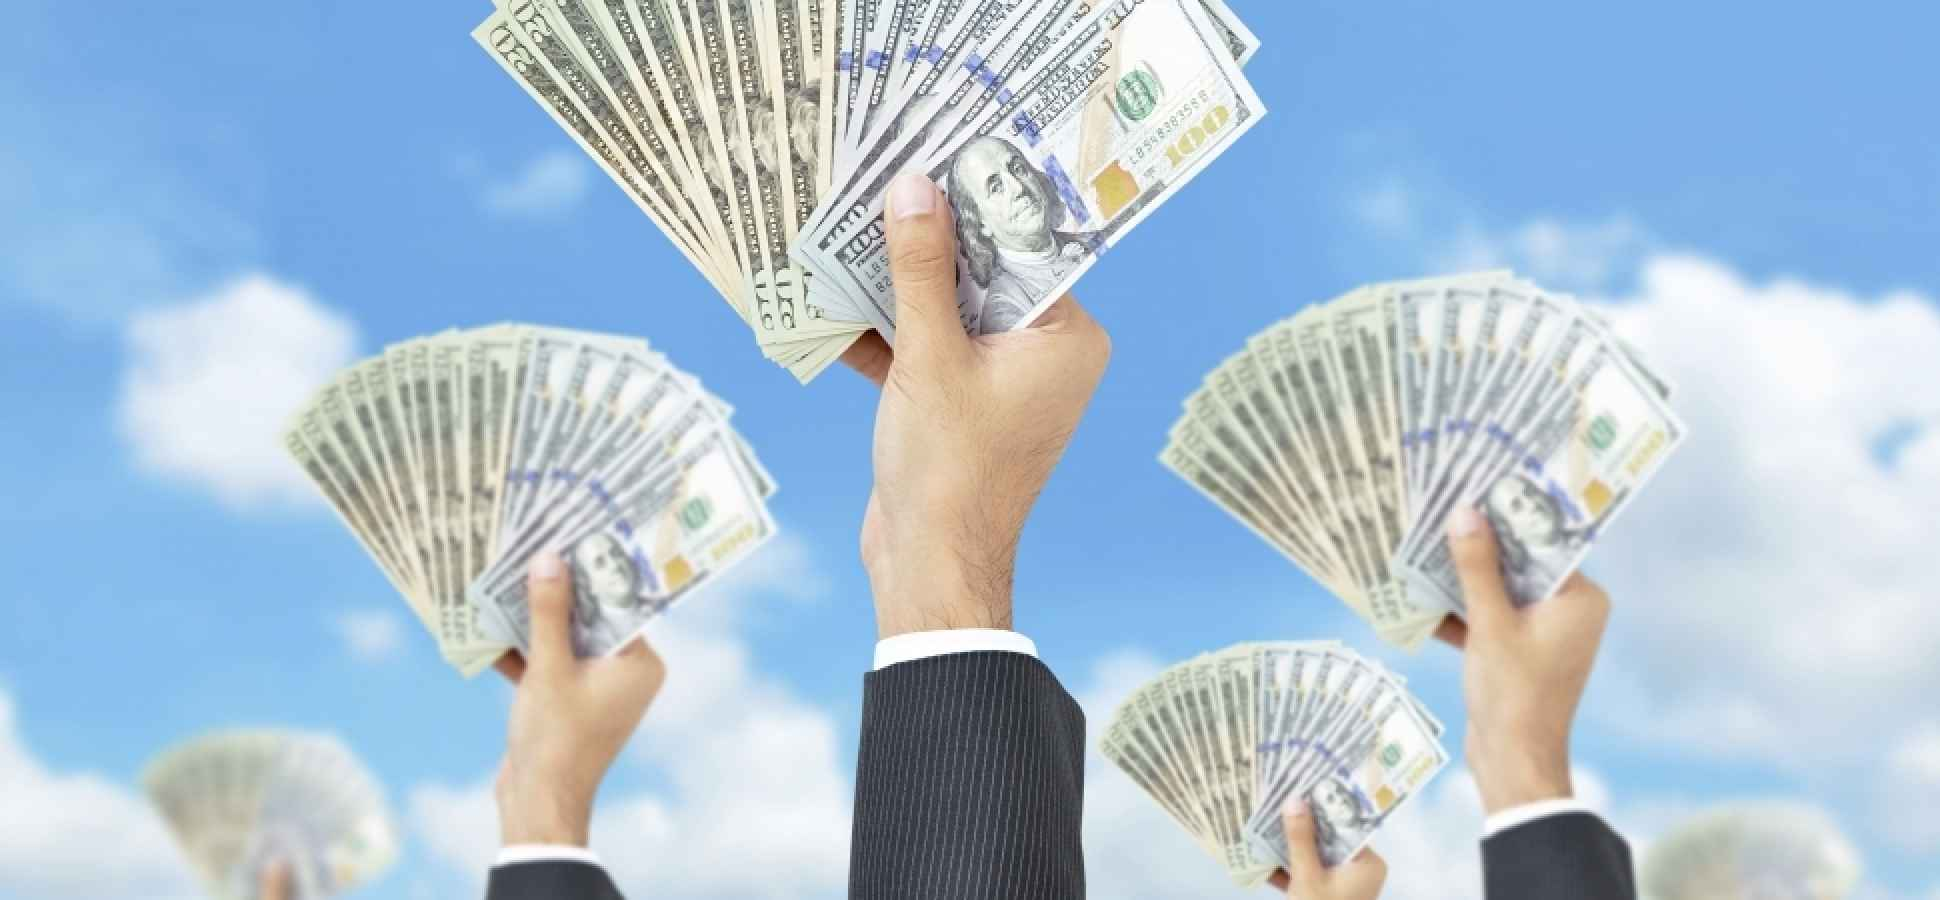 How Crowdfunding Is Changing The Way Startups Raise Money